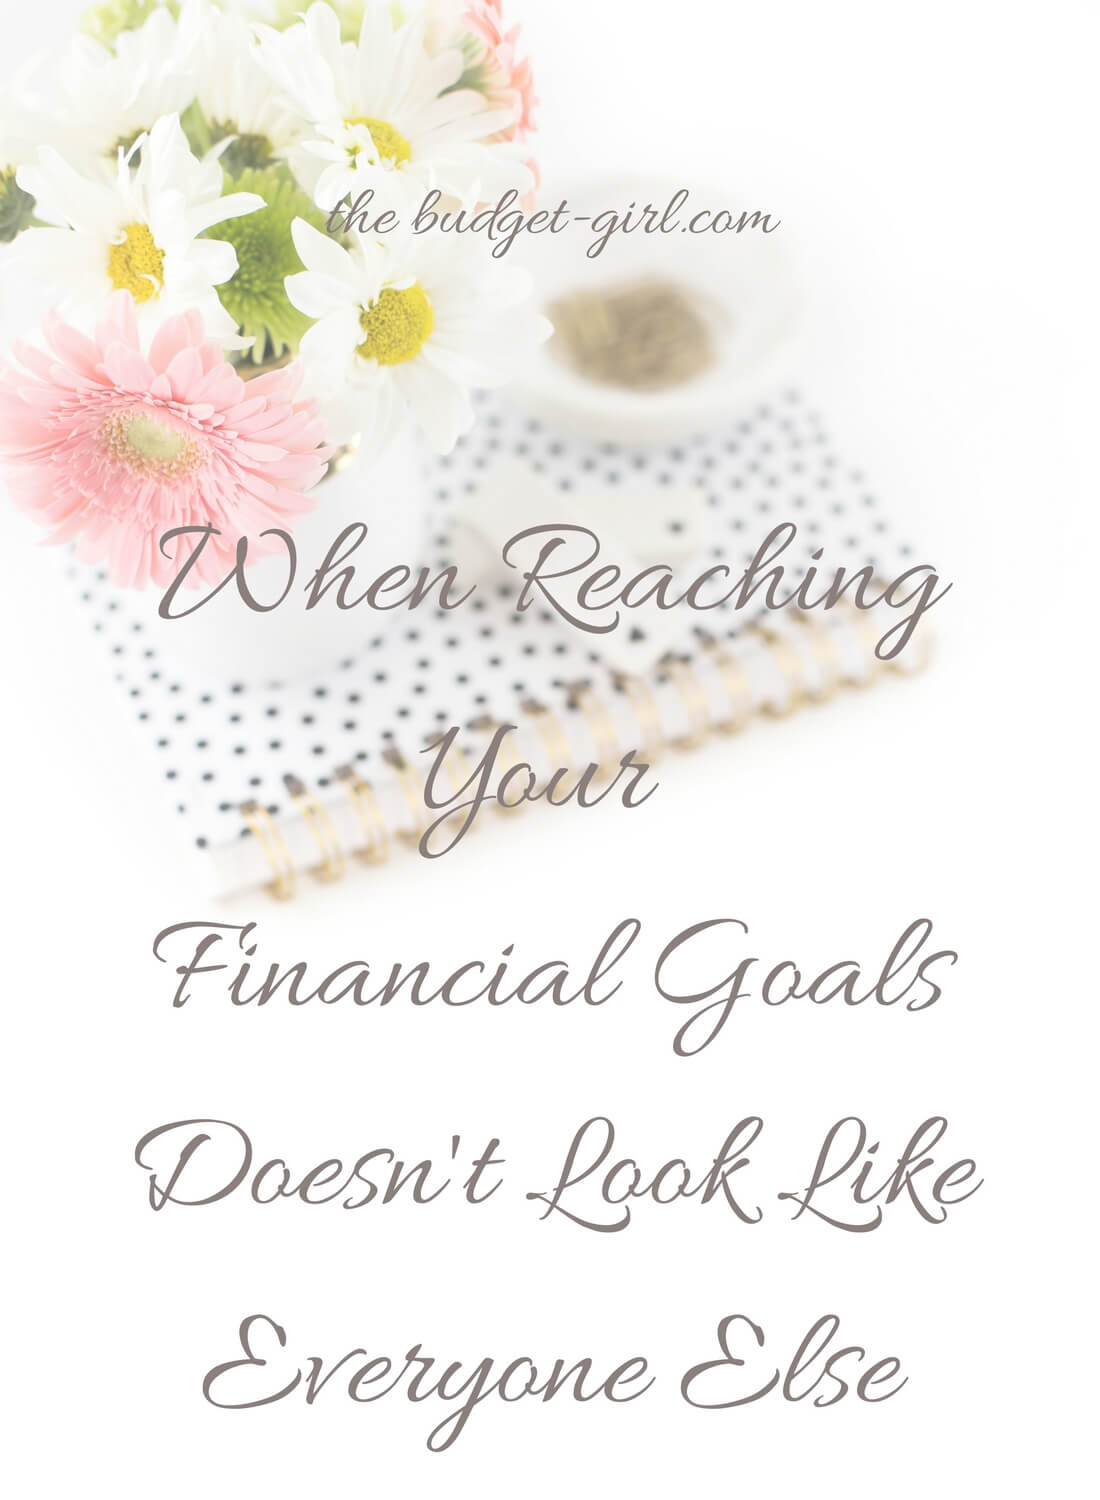 How We Are Reaching Our Financial Goals